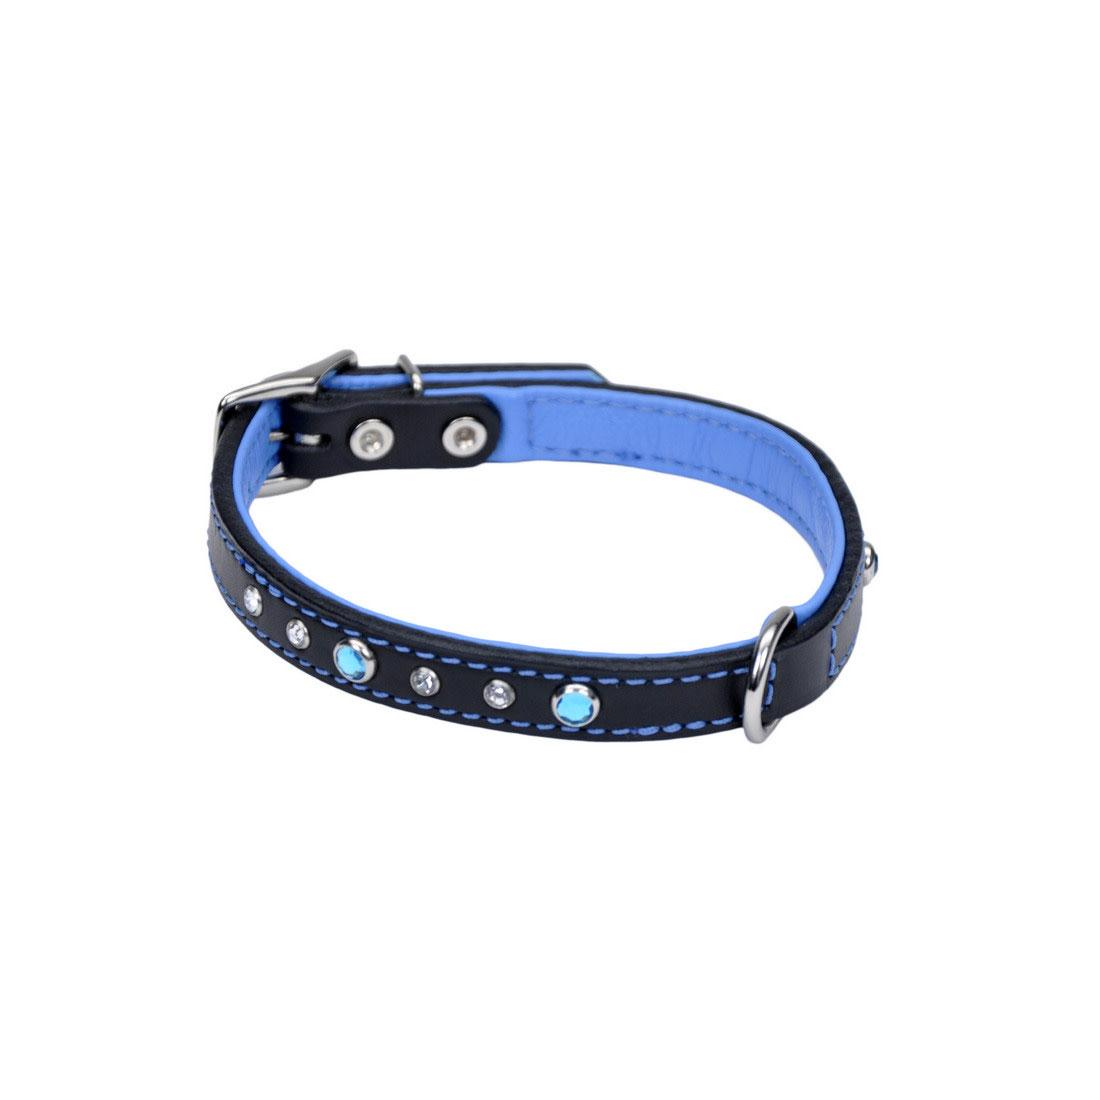 Circle T Fashion Leather with Jewels Dog Collar, Blue, 1-in x 18-in